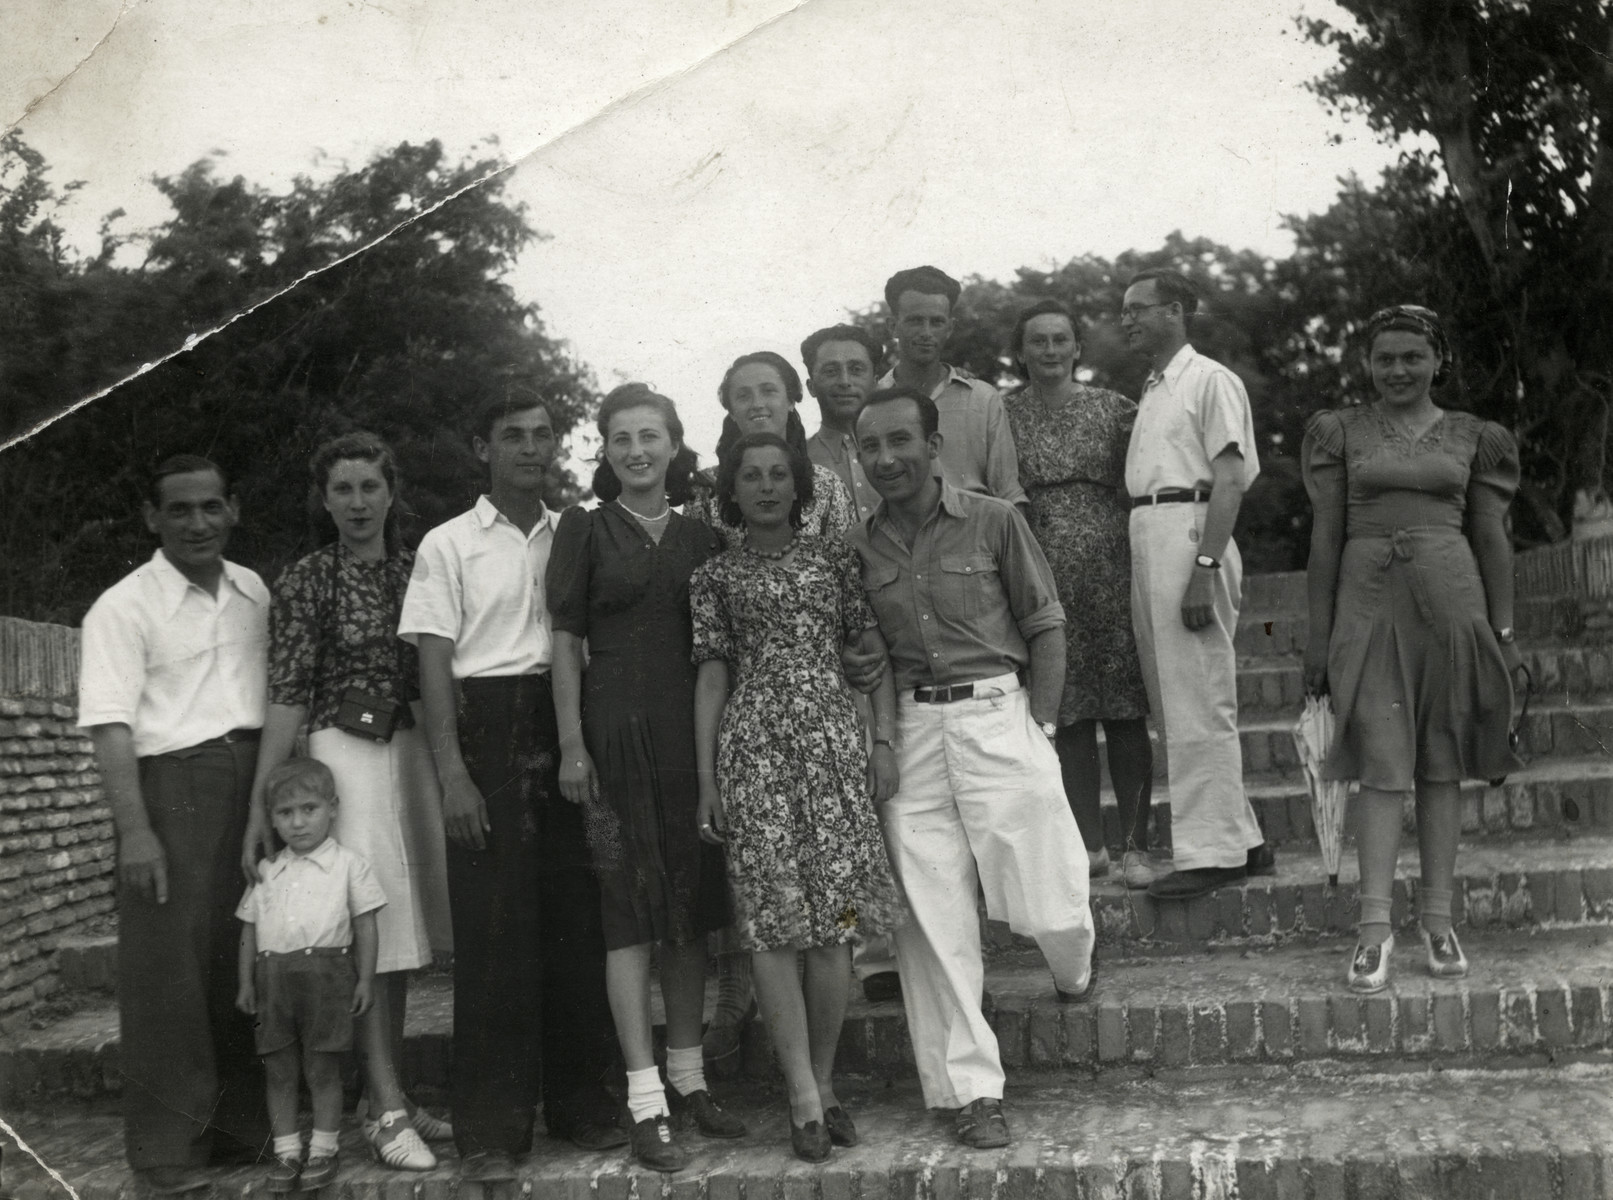 Polish Jewish refugees in Bukhara pose for a group photograph while on an outing.  Jonas, Benjamin and Rywka Markowicz are on the left.